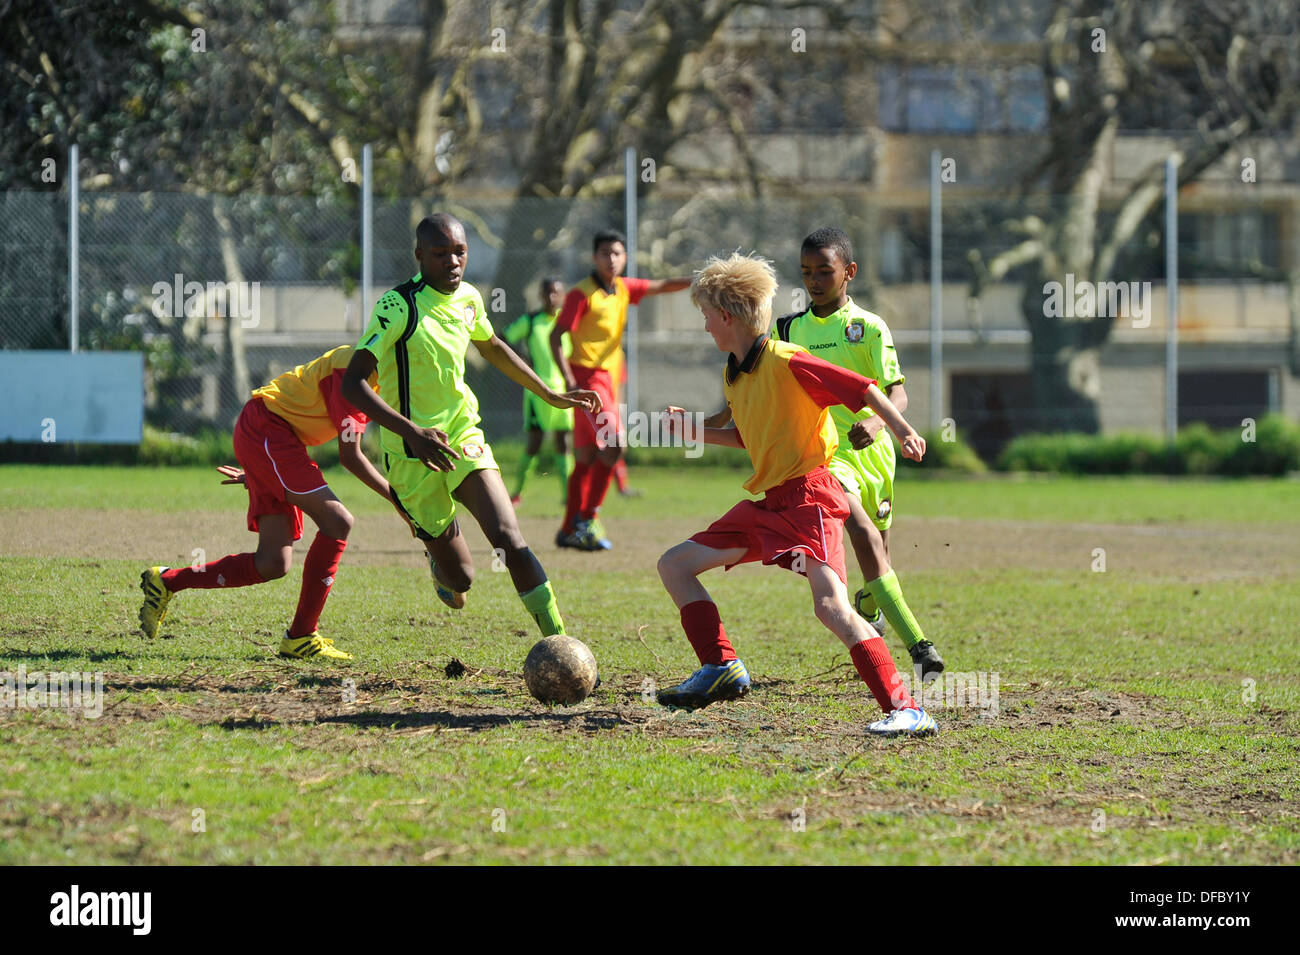 Junior football players playing a match, Cape Town, Western Cape, South Africa - Stock Image